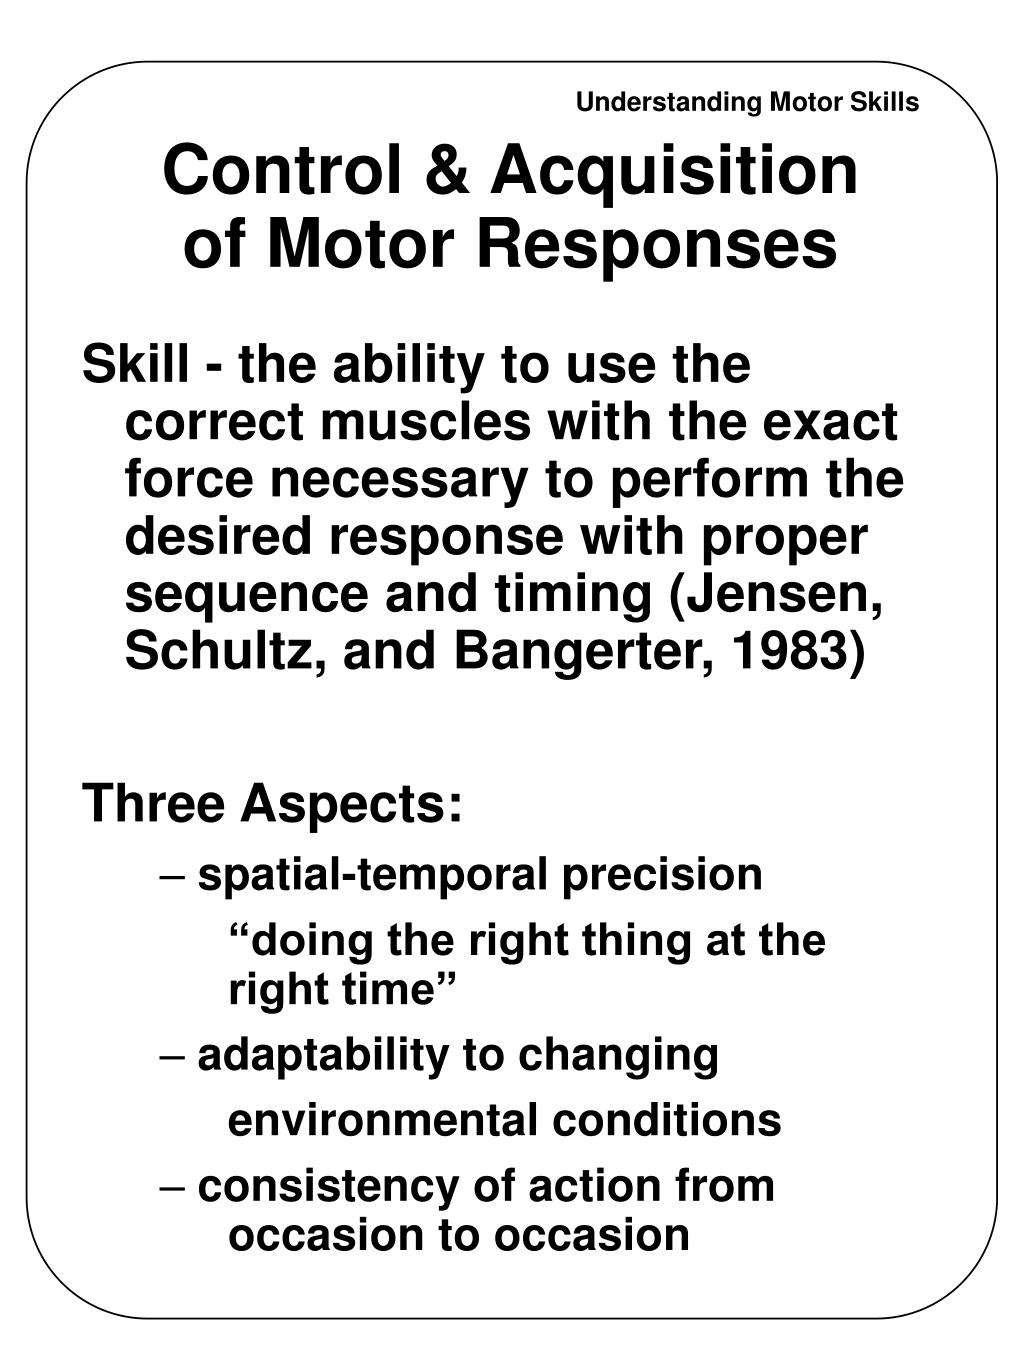 Control & Acquisition of Motor Responses